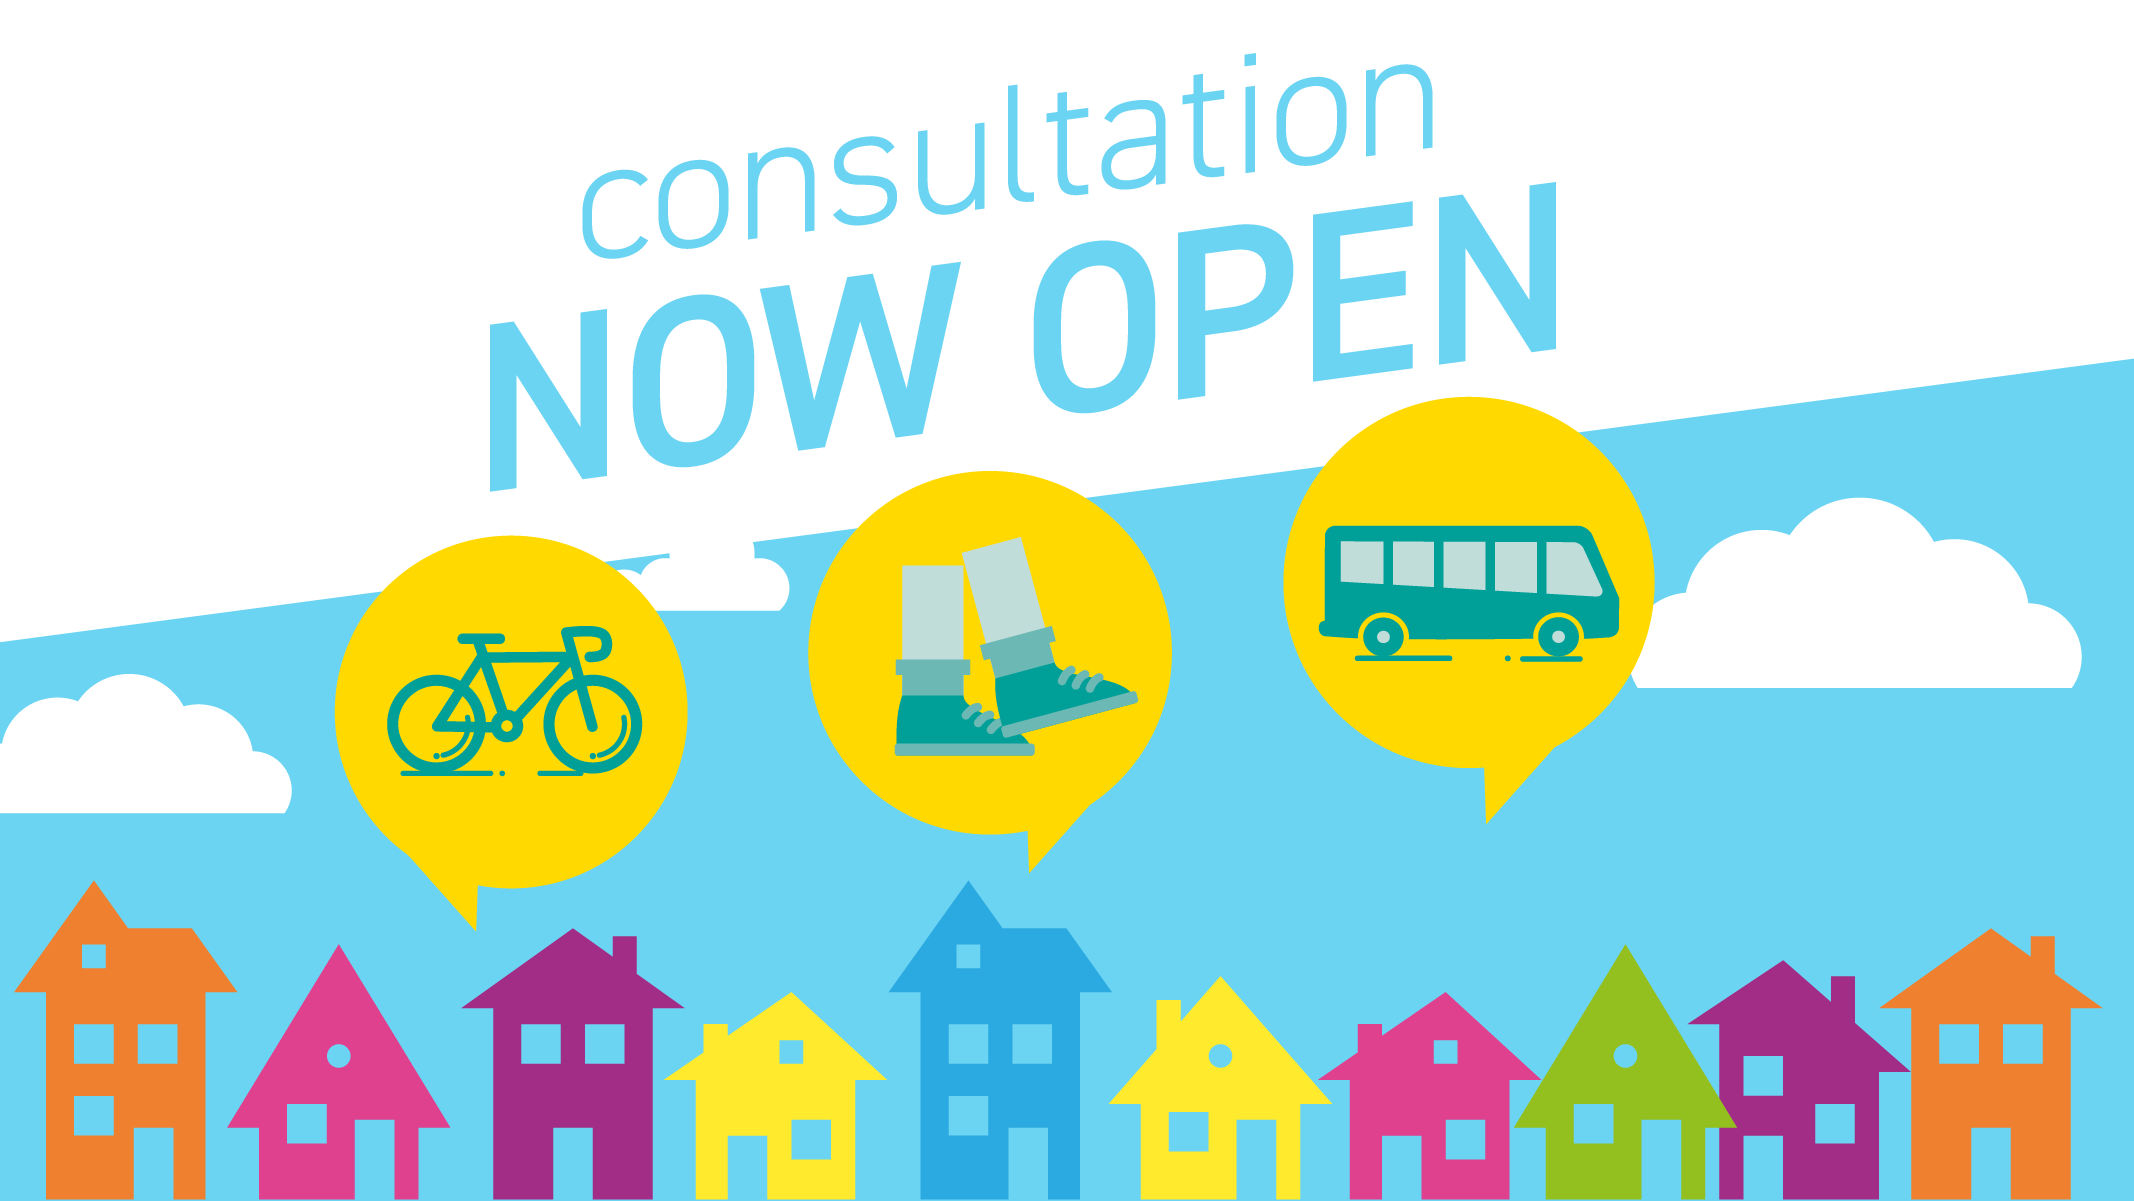 consultation now open